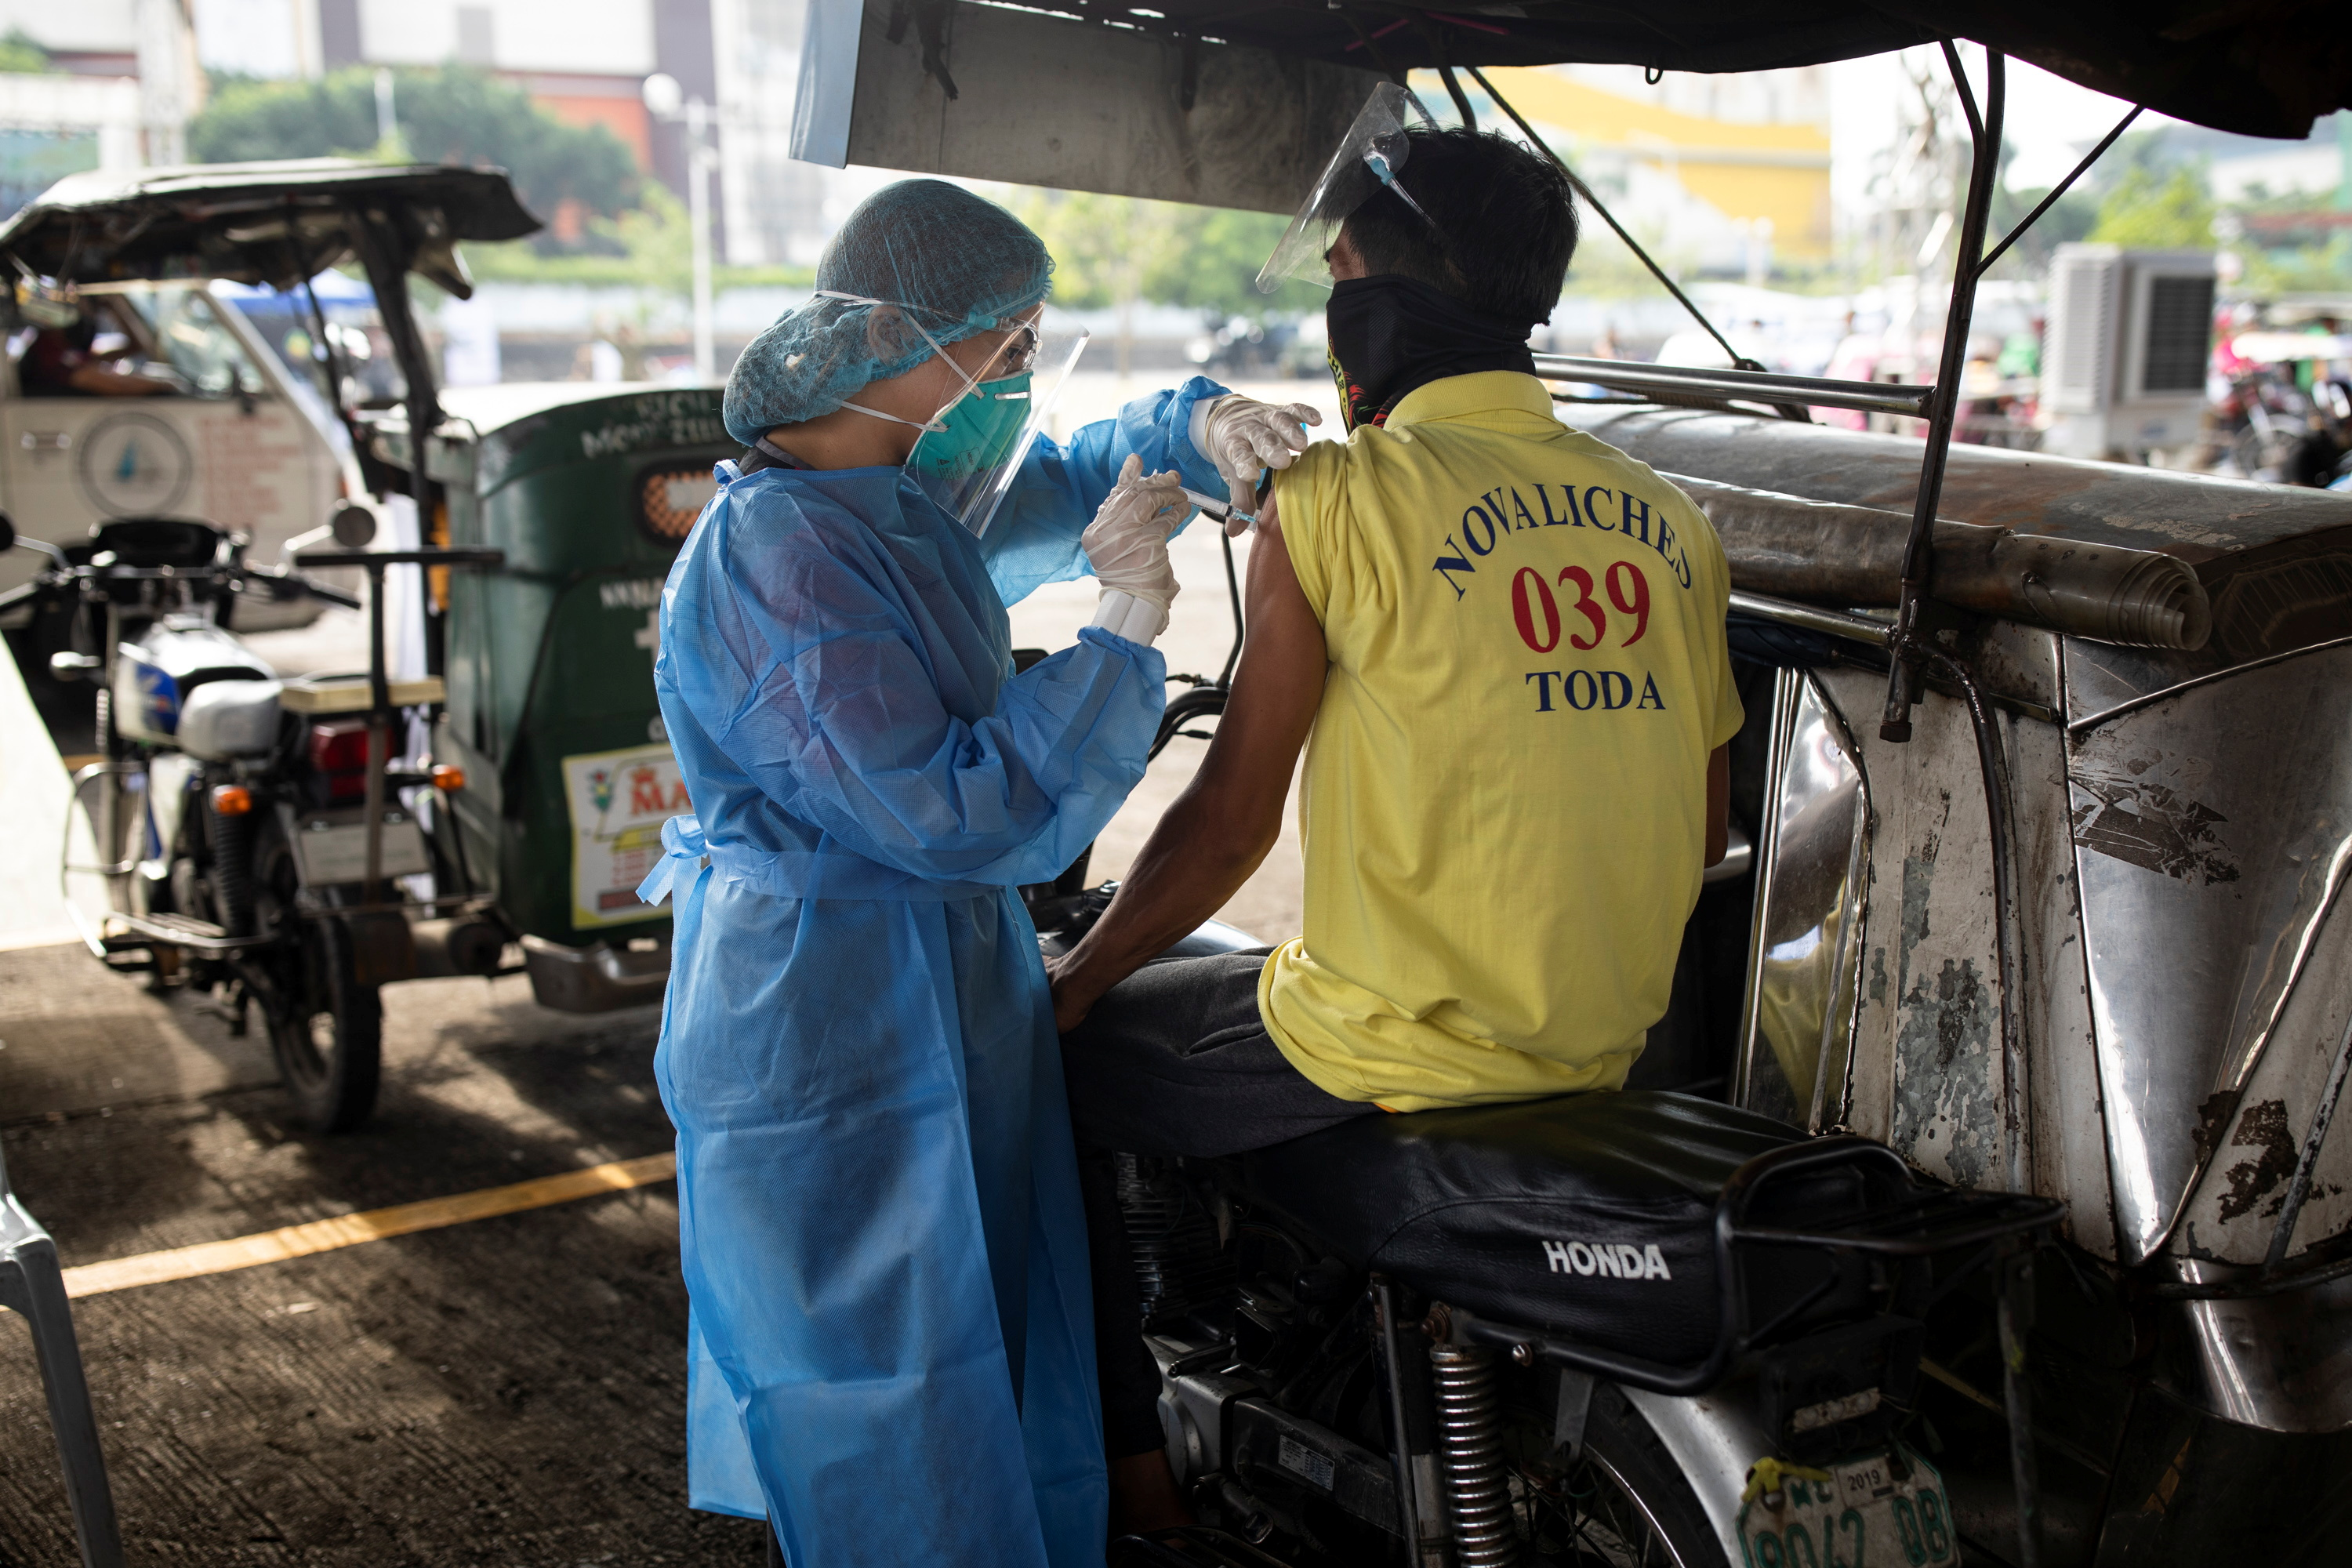 A health worker vaccinates a public transport driver with Sinovac COVID-19 vaccine in a shopping mall's parking lot turned into a drive-thru vaccination site, in Quezon City, Metro Manila, Philippines, August 13, 2021. REUTERS/Eloisa Lopez